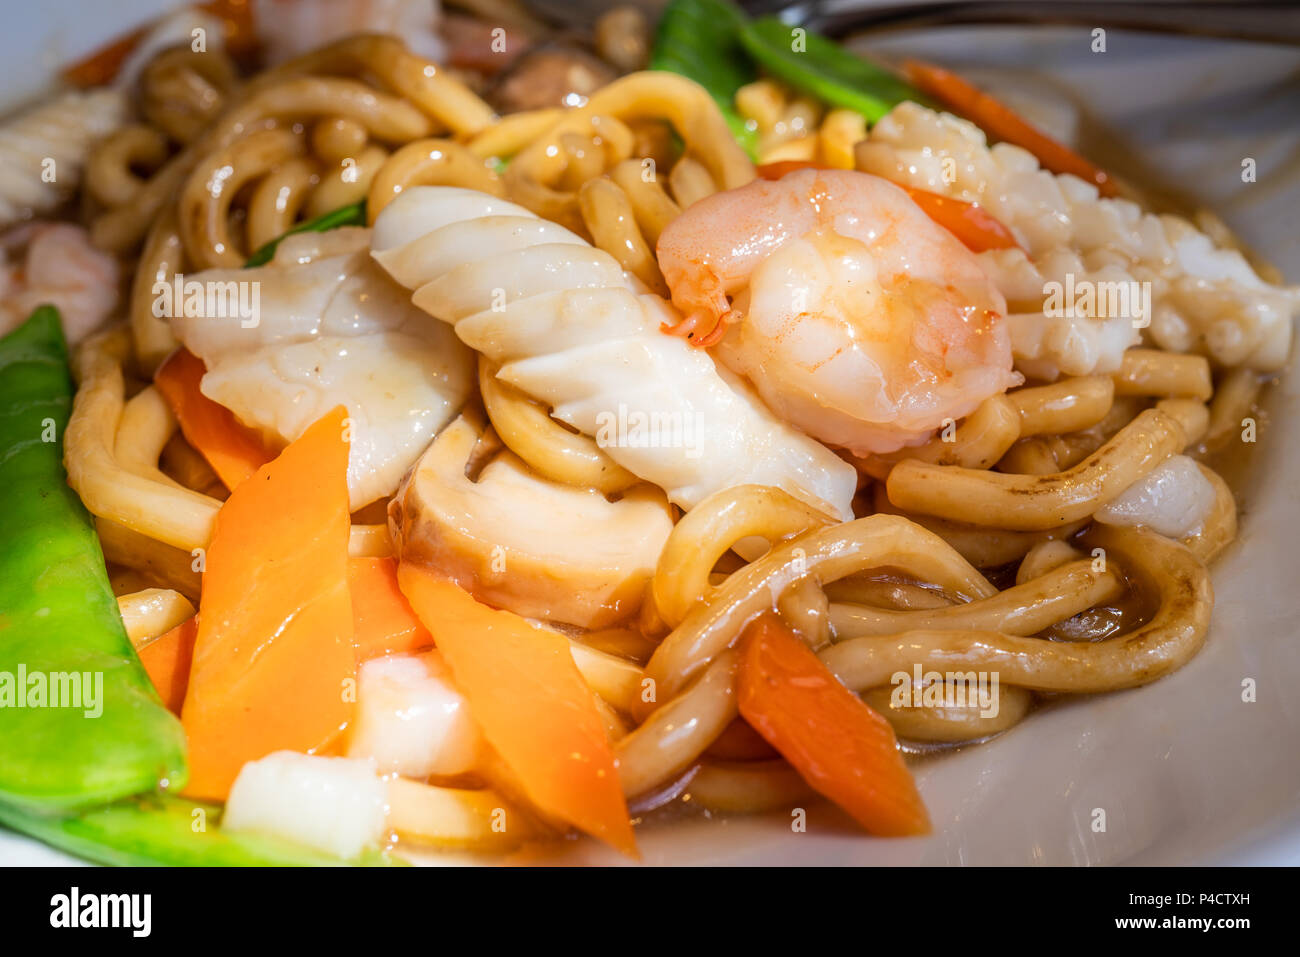 plate of stir fried seafood udon noodle ...